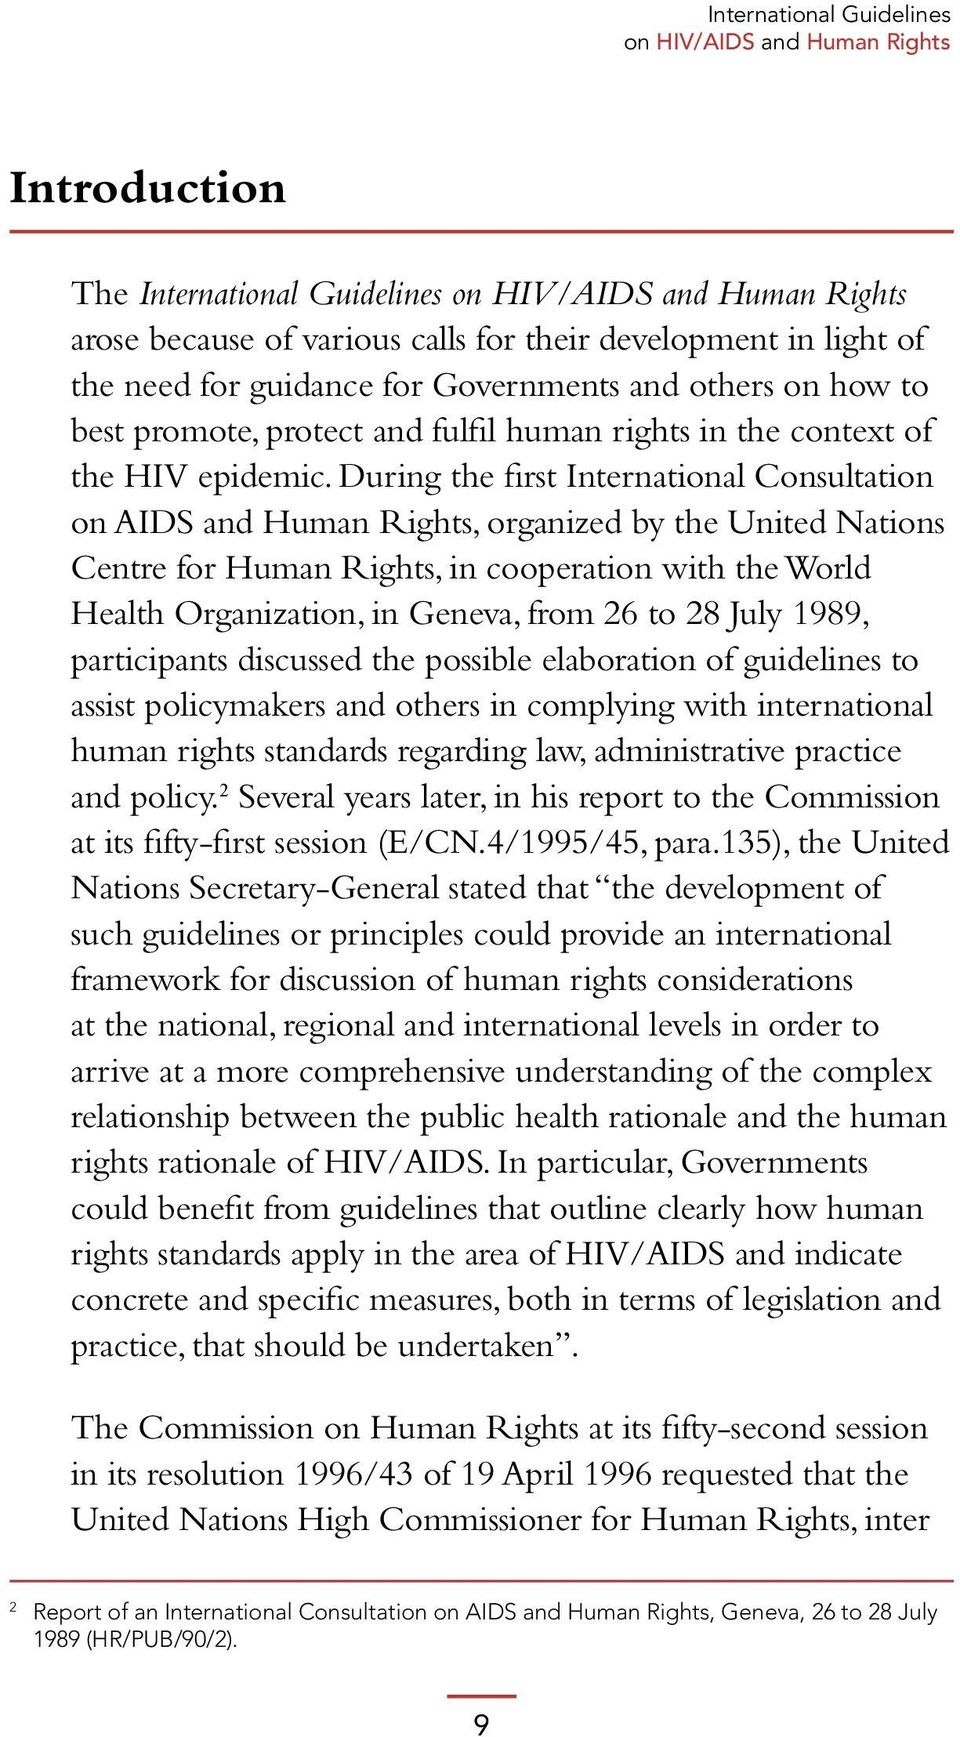 During the first International Consultation on AIDS and Human Rights, organized by the United Nations Centre for Human Rights, in cooperation with the World Health Organization, in Geneva, from 26 to